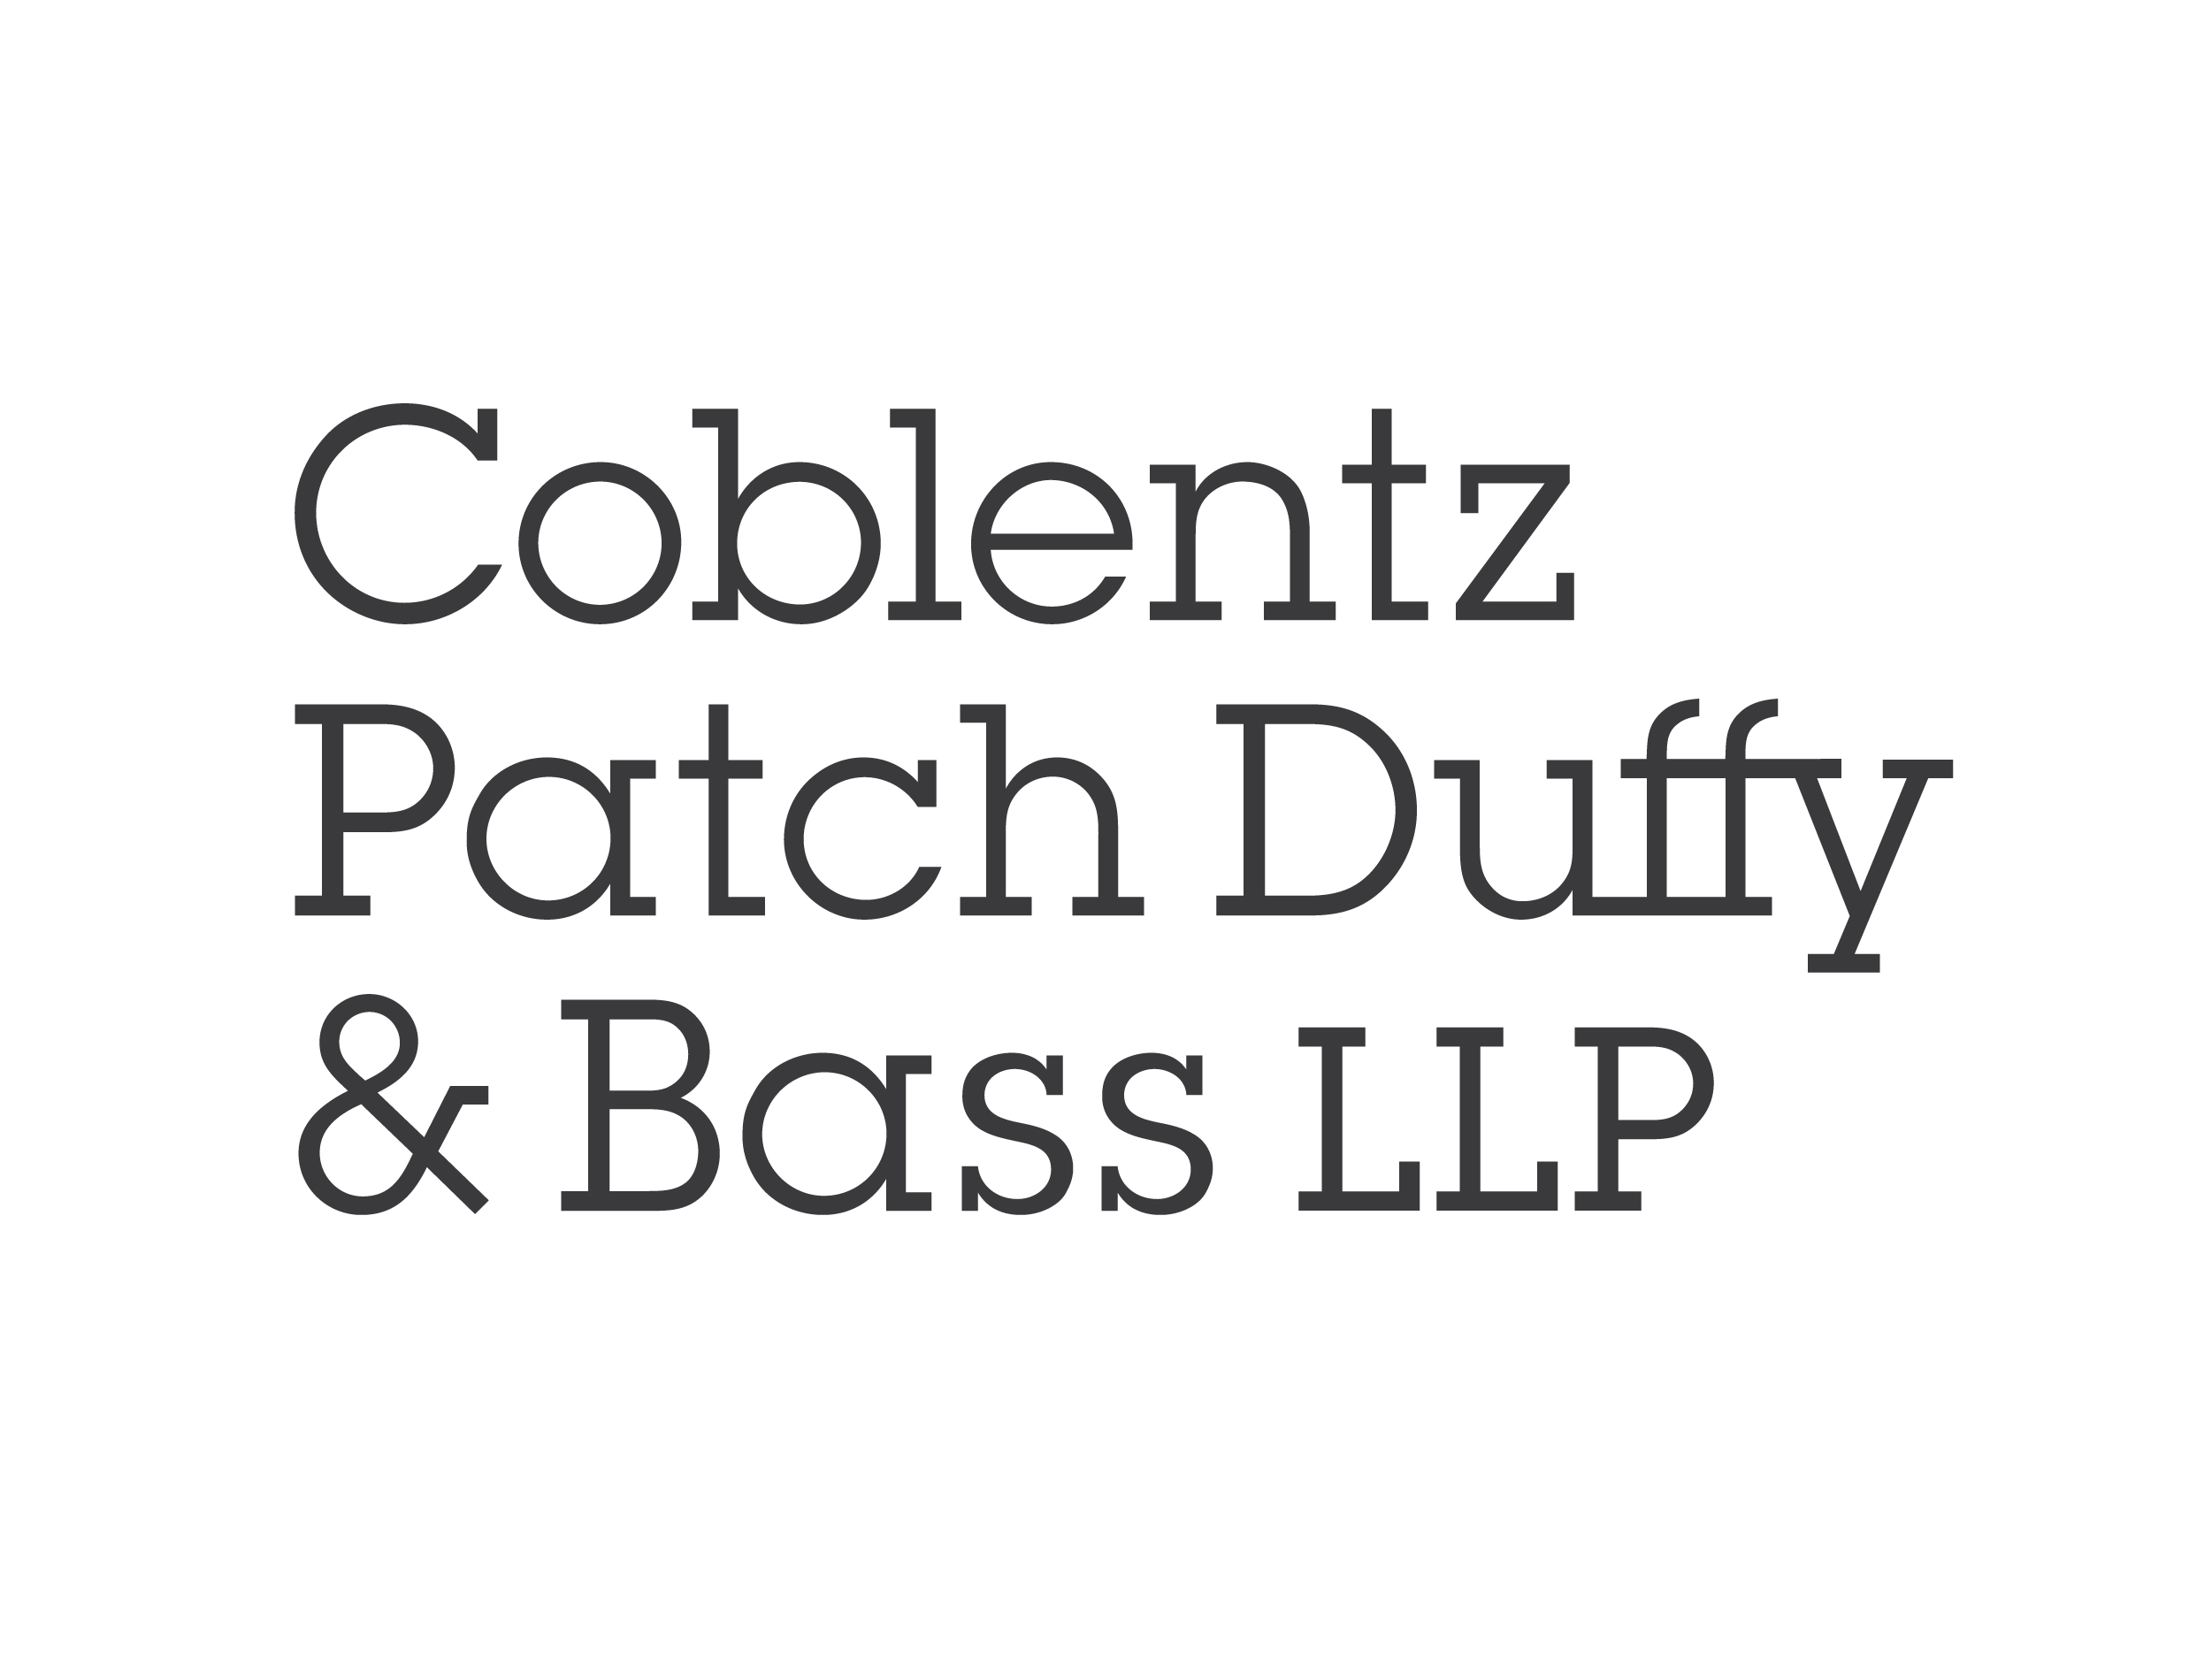 Coblentz Patch Duffy & Bass